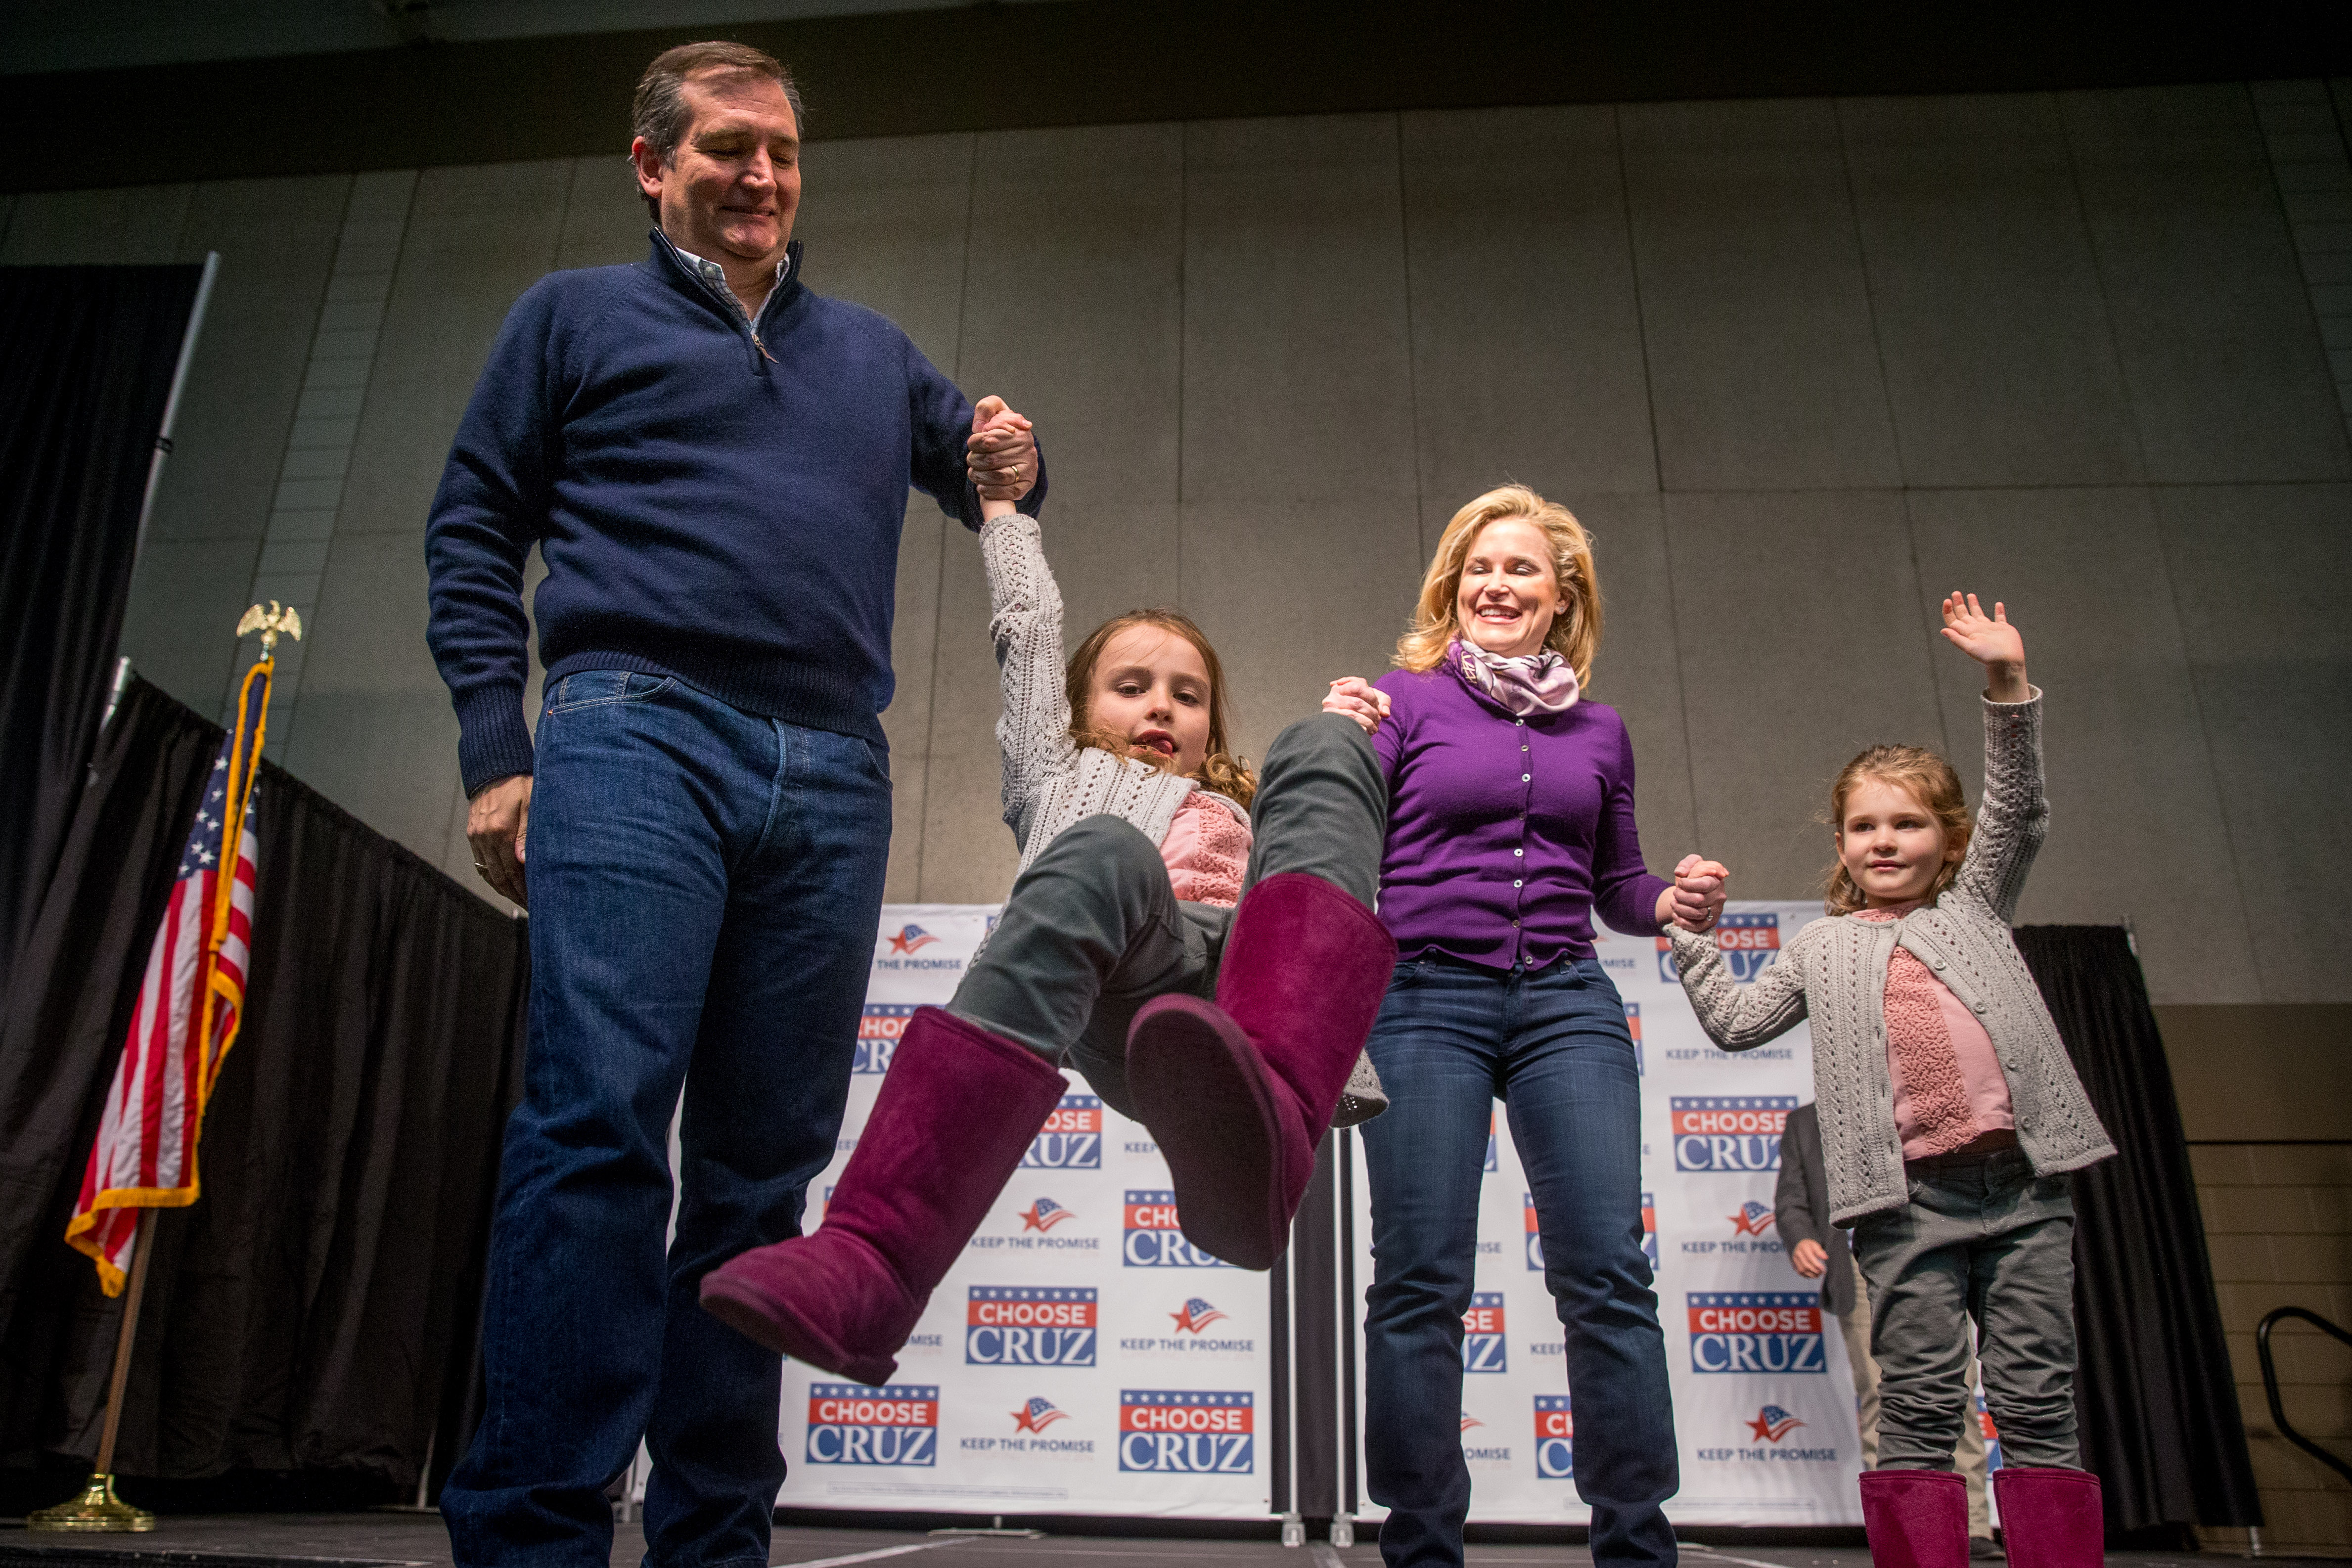 Republican presidential candidate, Texas Sen. Ted Cruz, and his wife Heidi swing their daughter Caroline, 7, as their daughter Catherine, 4, waves at a rally in Waterloo, Iowa, on Jan. 23, 2016.